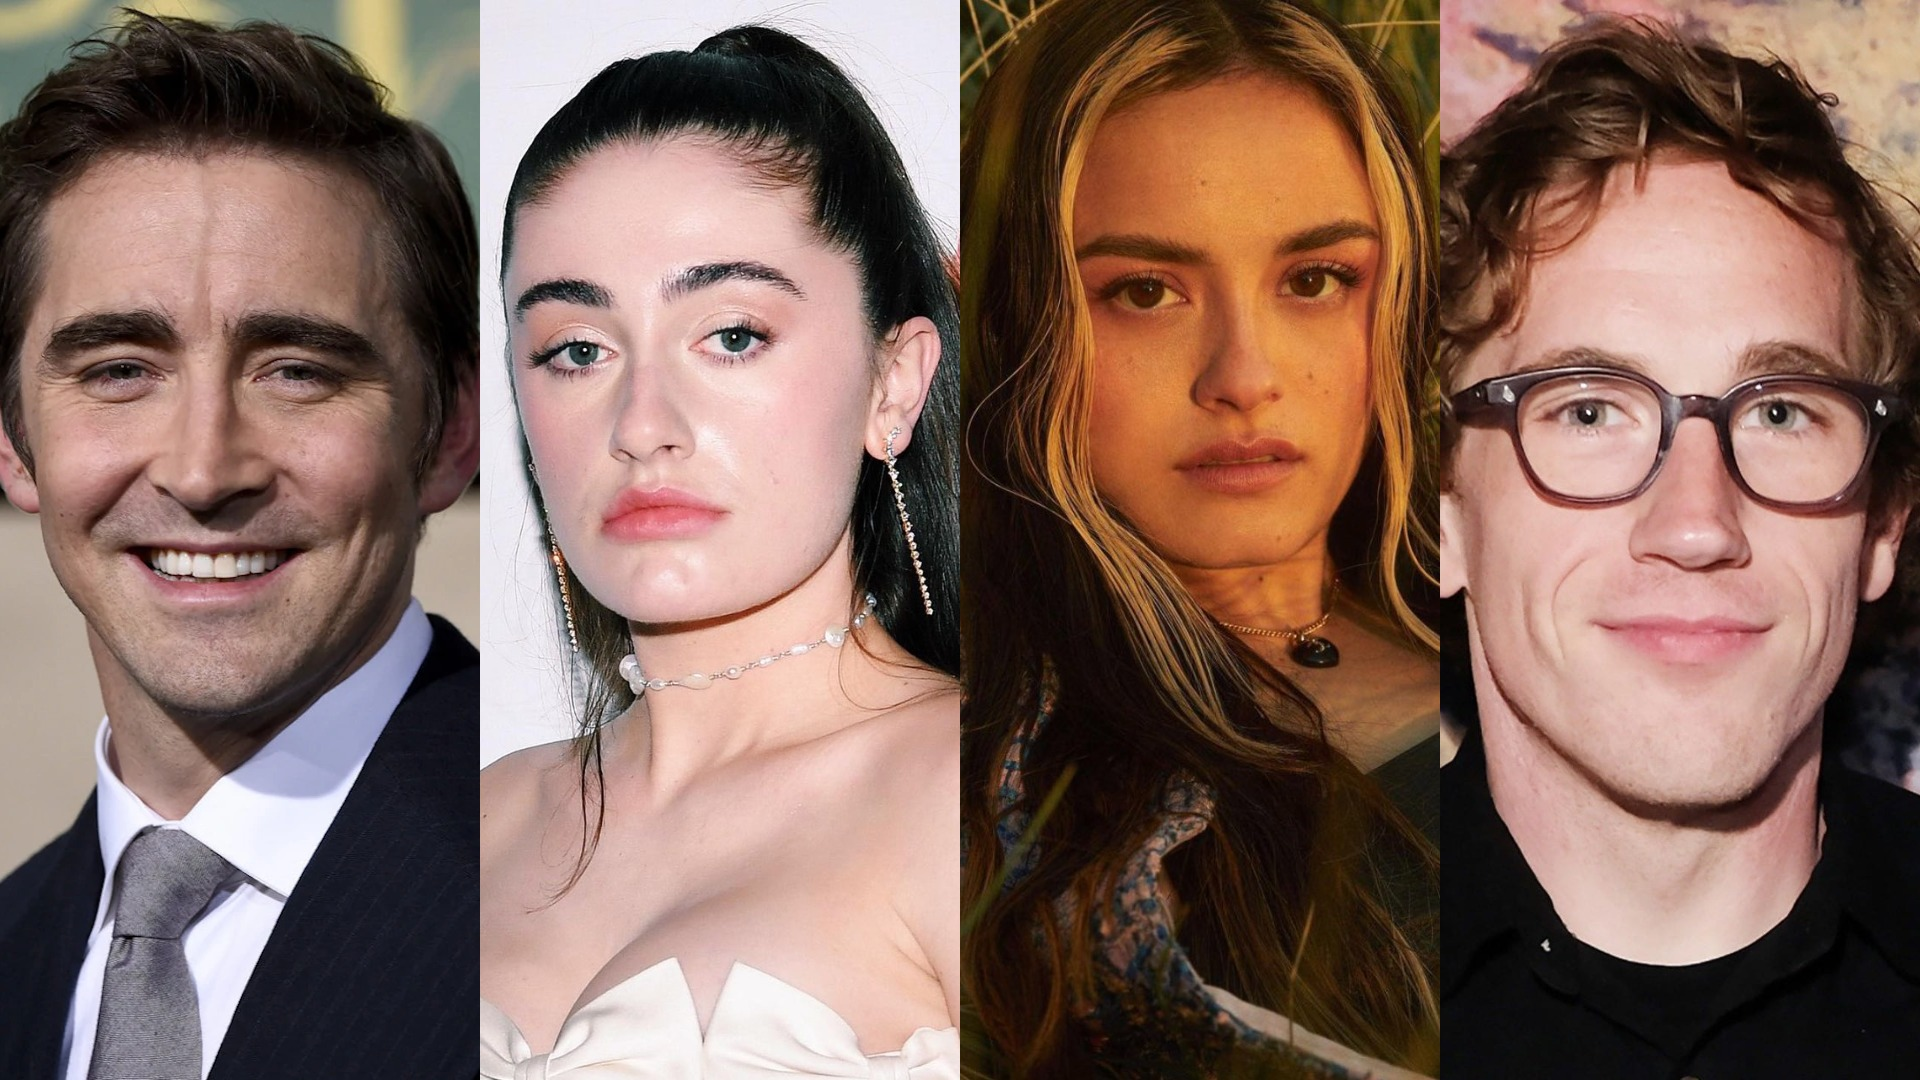 Film News - Bodies, Bodies, Bodies - Lee Pace, Rachel Sennott, Chase Sui Wonders And Conner O'Malley Join Cast For Slasher Thriller At A24